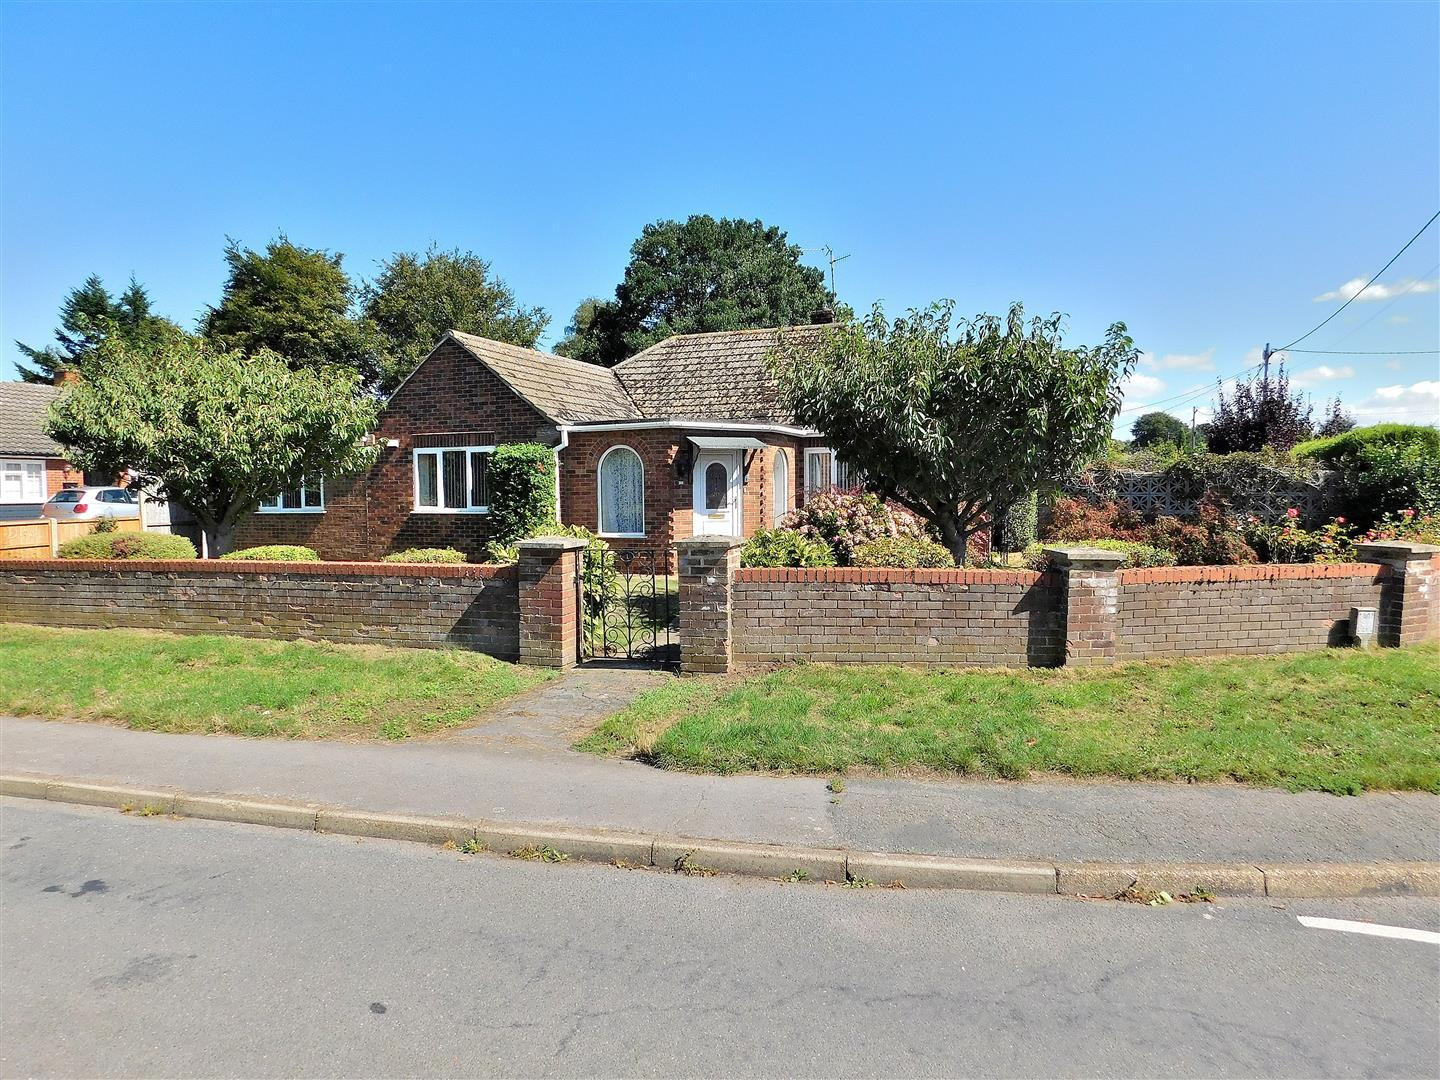 3 bed detached bungalow for sale in King's Lynn, PE31 6JR  - Property Image 1